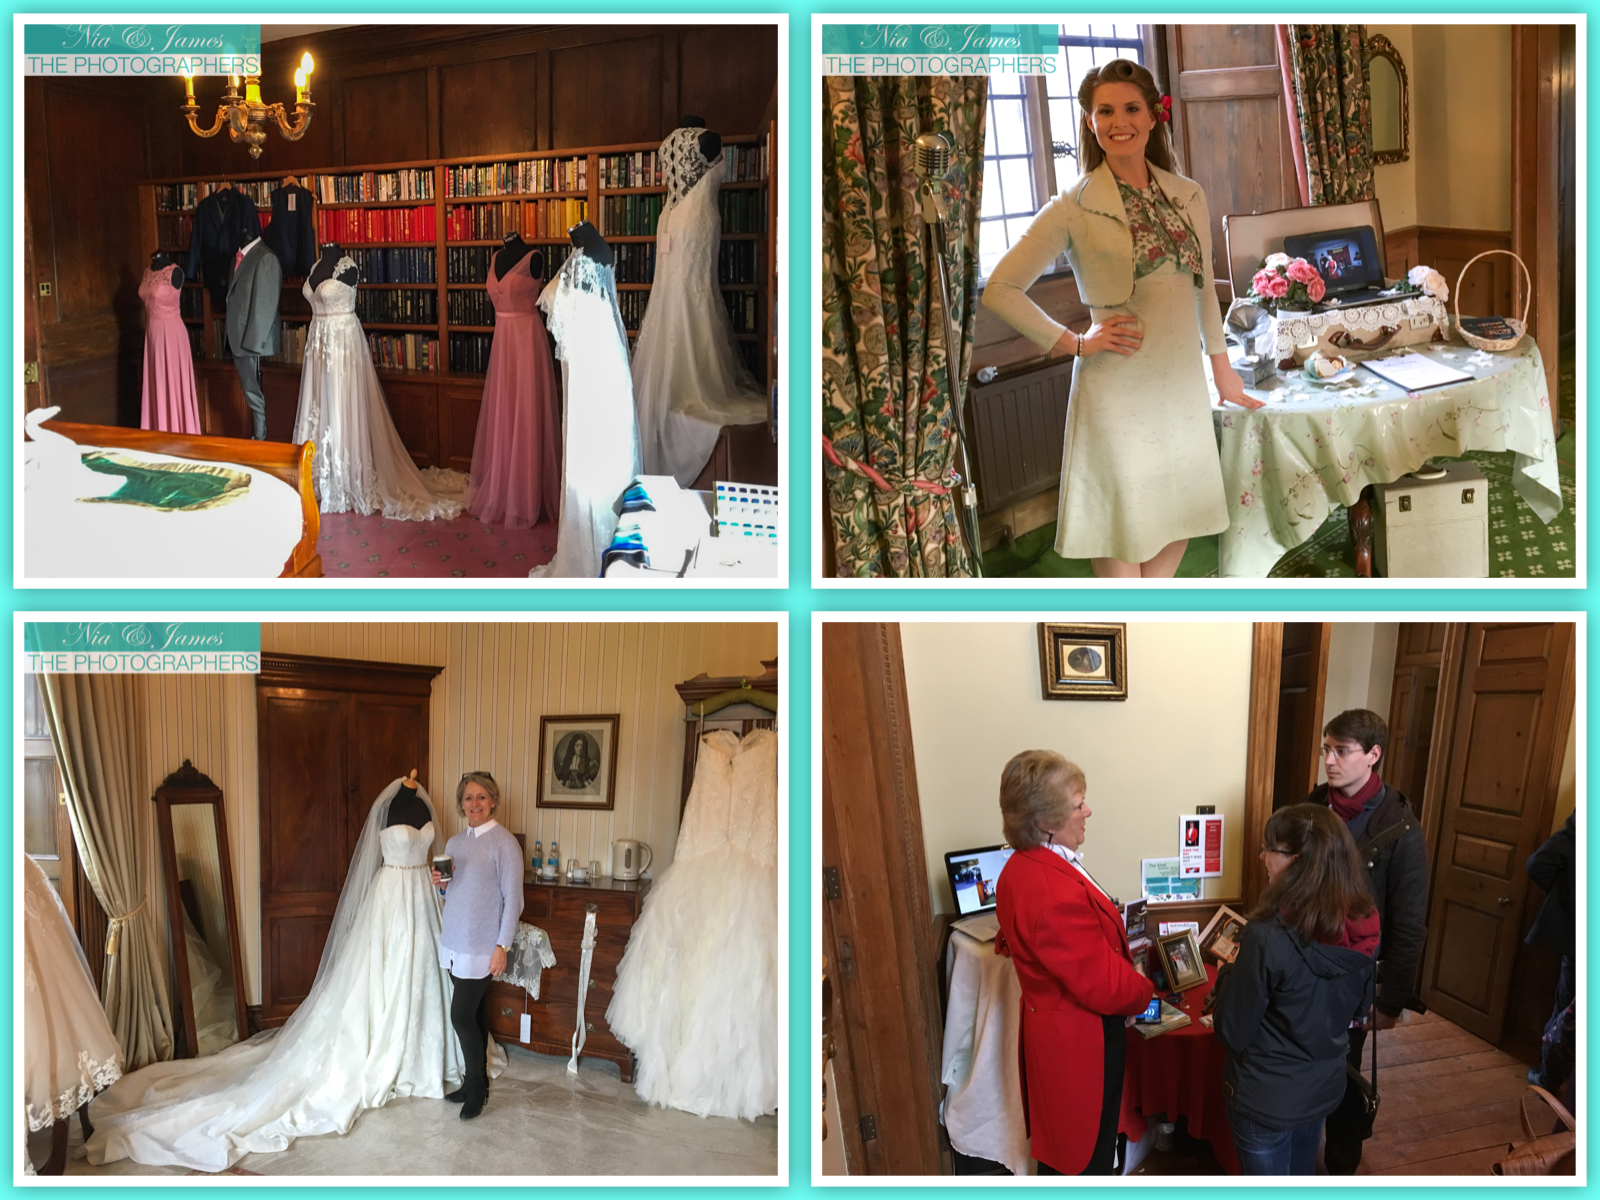 A few of the great wedding suppliers who were exhibiting alongside in the Manor House. Nia & James the photographers at Hockwold Hall Wedding Fayre. Clockwise from top left: Newmarket basted bridal shop - Bride-all , Vintage singer & childrens story teller  Alex Shows , Rosalind Hamill, unique female  Toastmaster , Wedding dress supplier  Just a Day Bridal.